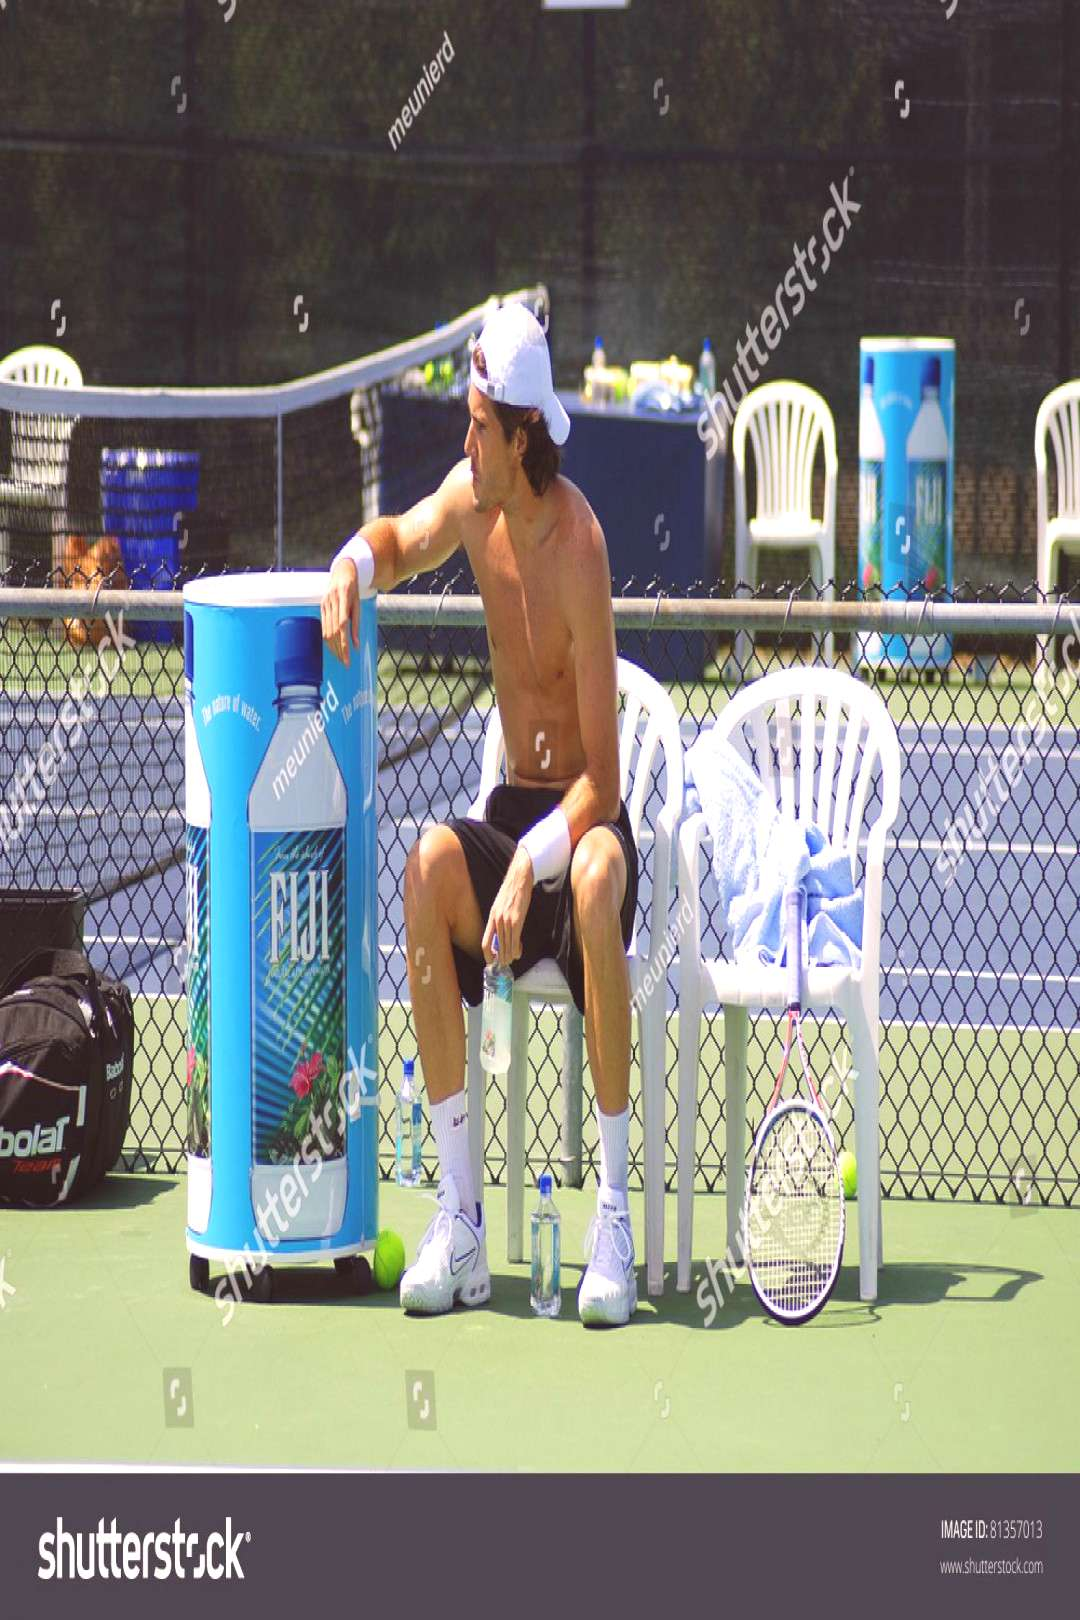 MONTREAL - AUGUST 5 Tommy Haas without shirt on court of Montreal Rogers Cup on August 5, 2009 in